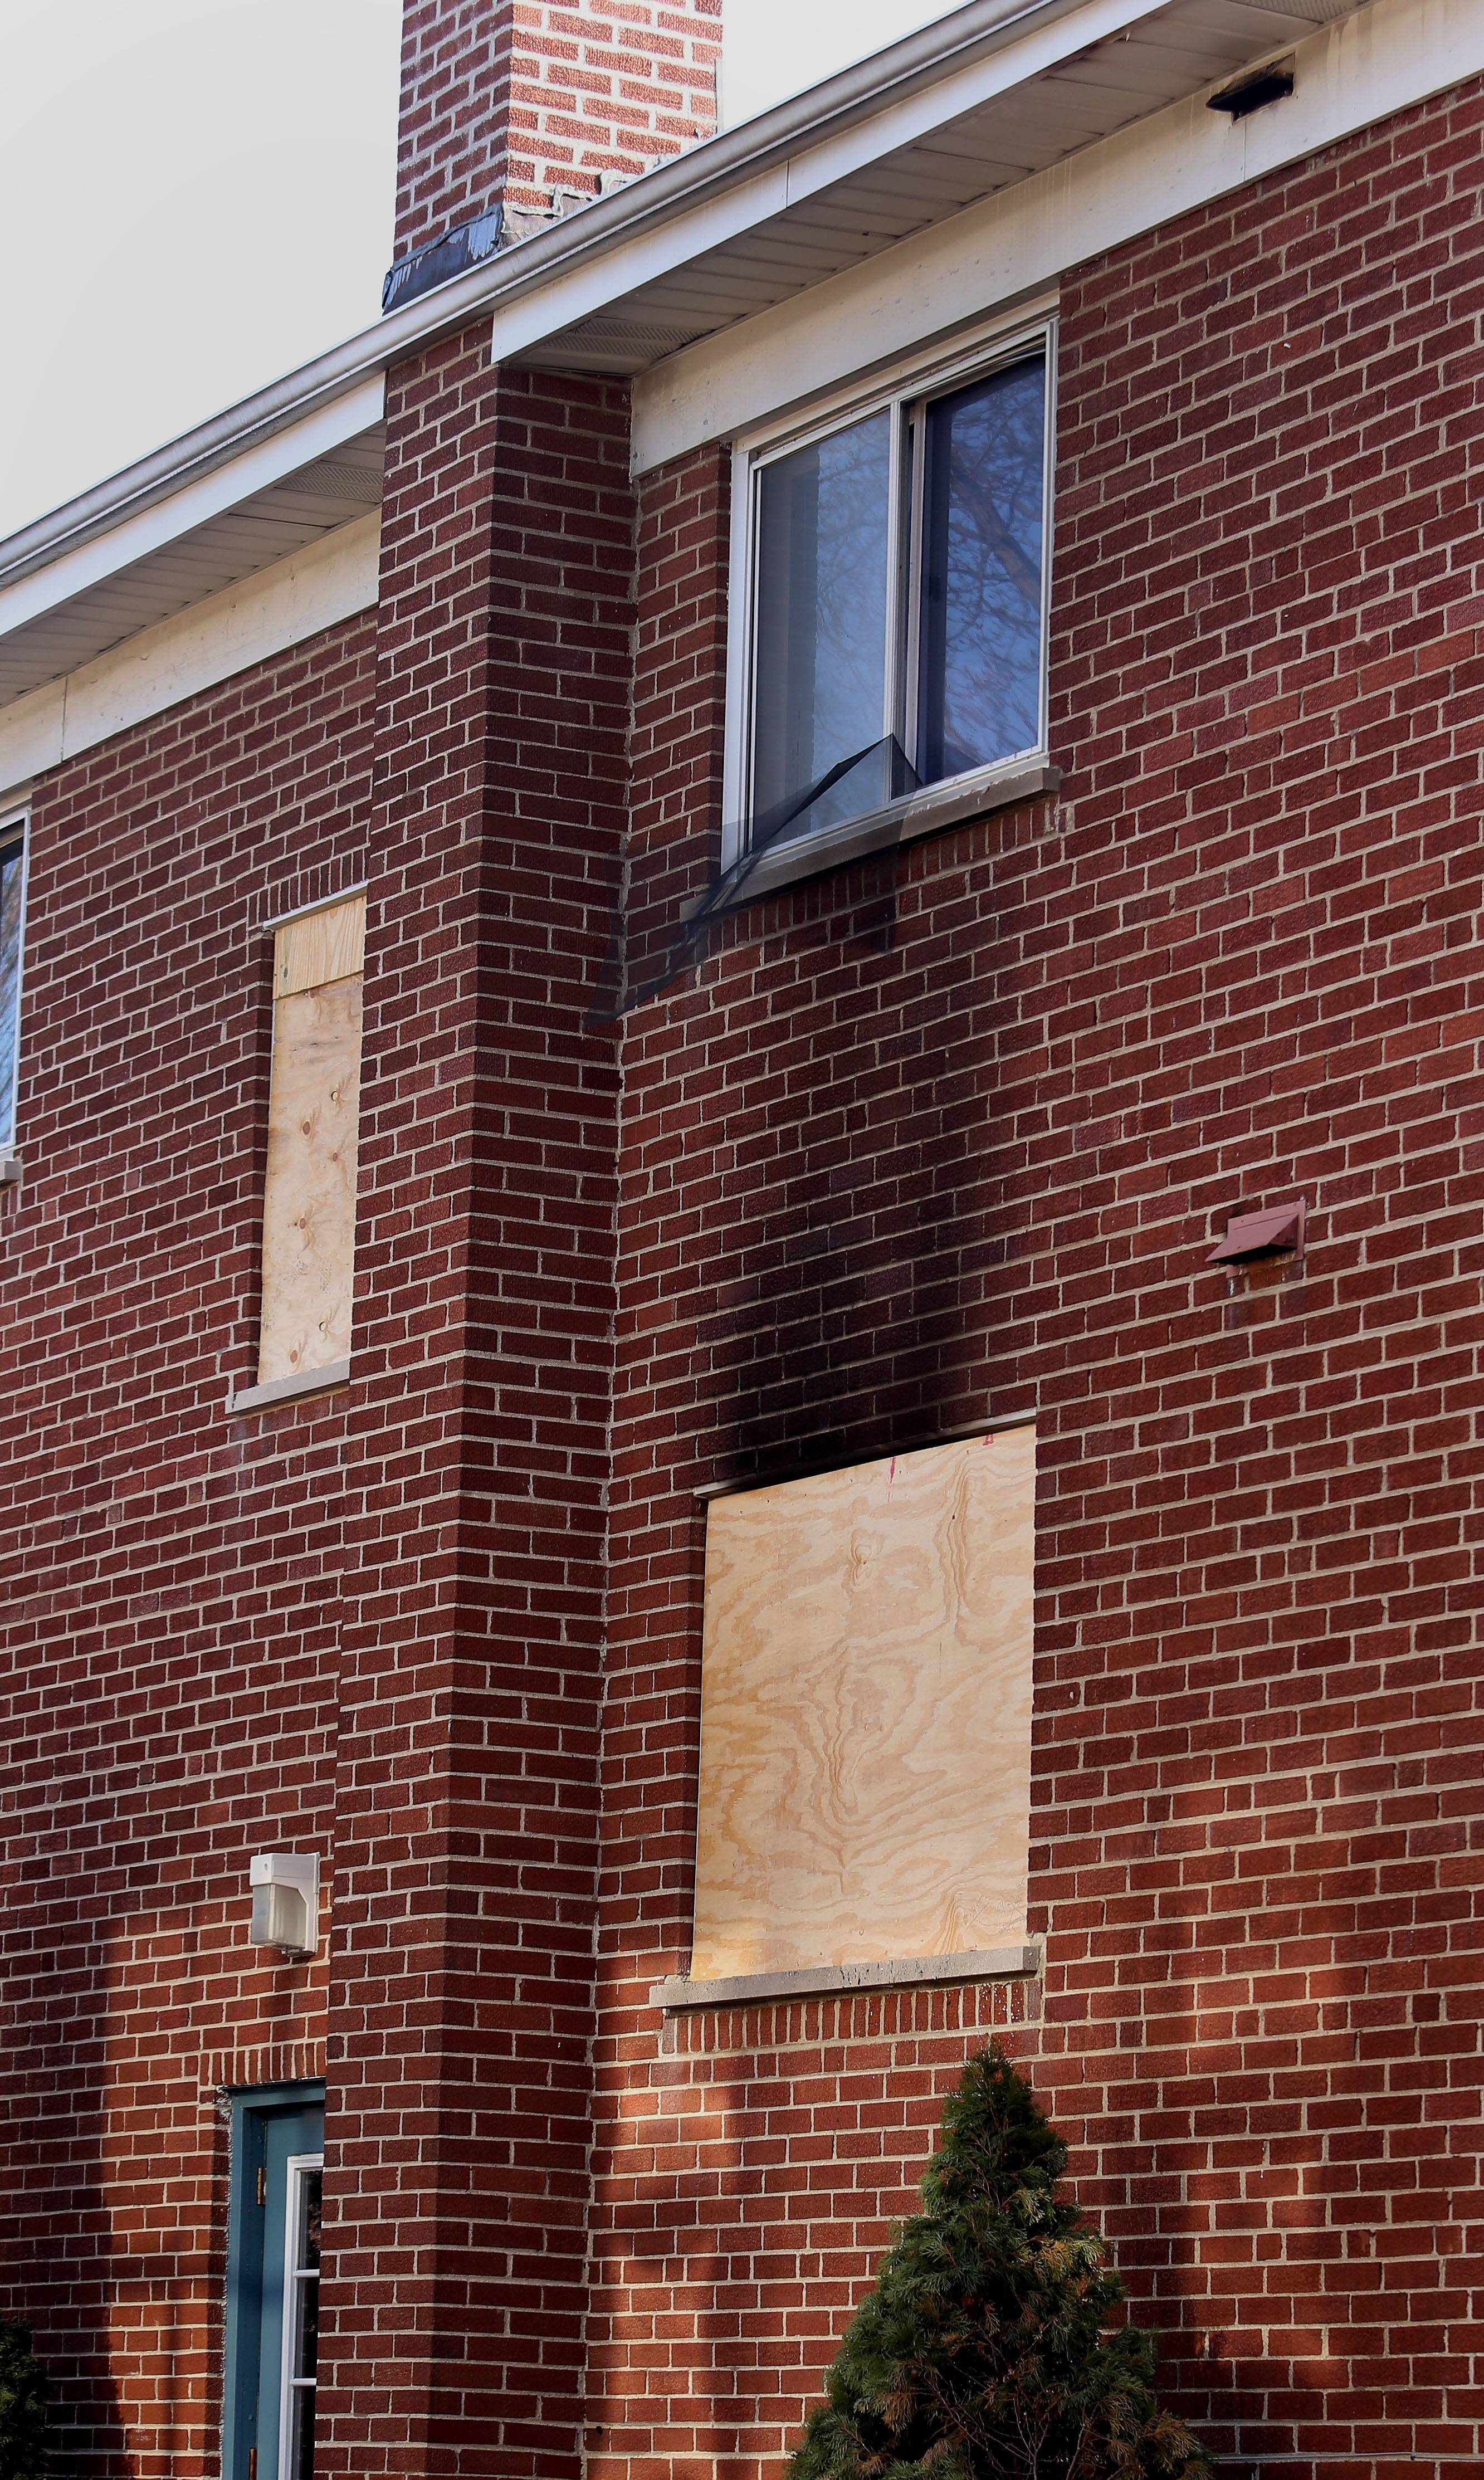 Naperville firefighters are investigating the cause of a blaze that killed one person Thursday night in an apartment building on the 100 block of Douglas Avenue.